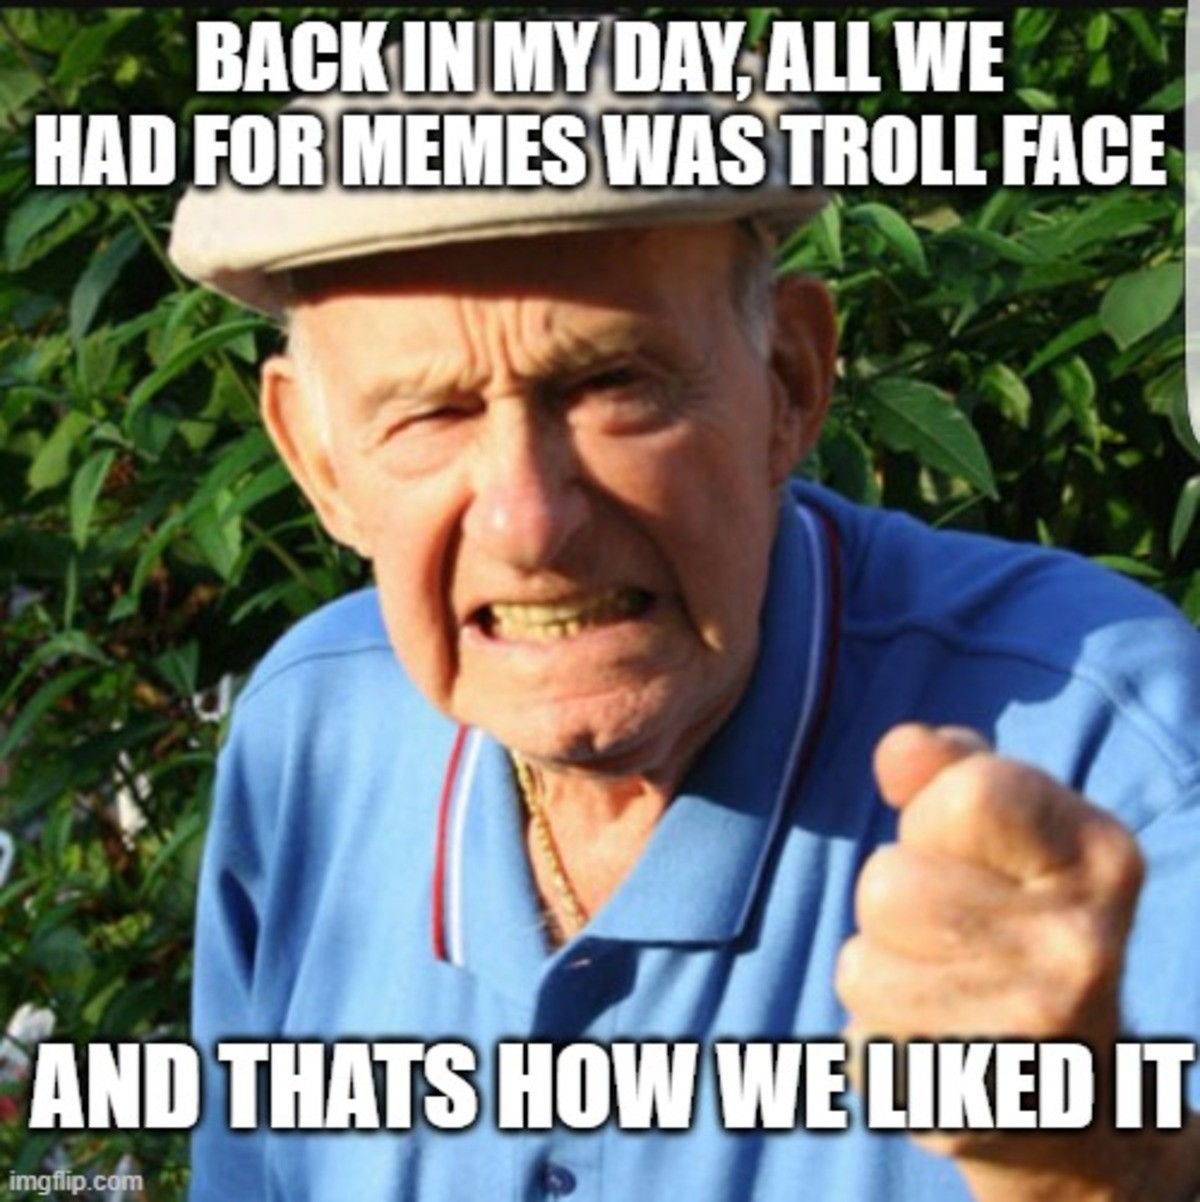 the good old days. .. We always had 100s of memes, even before trollface